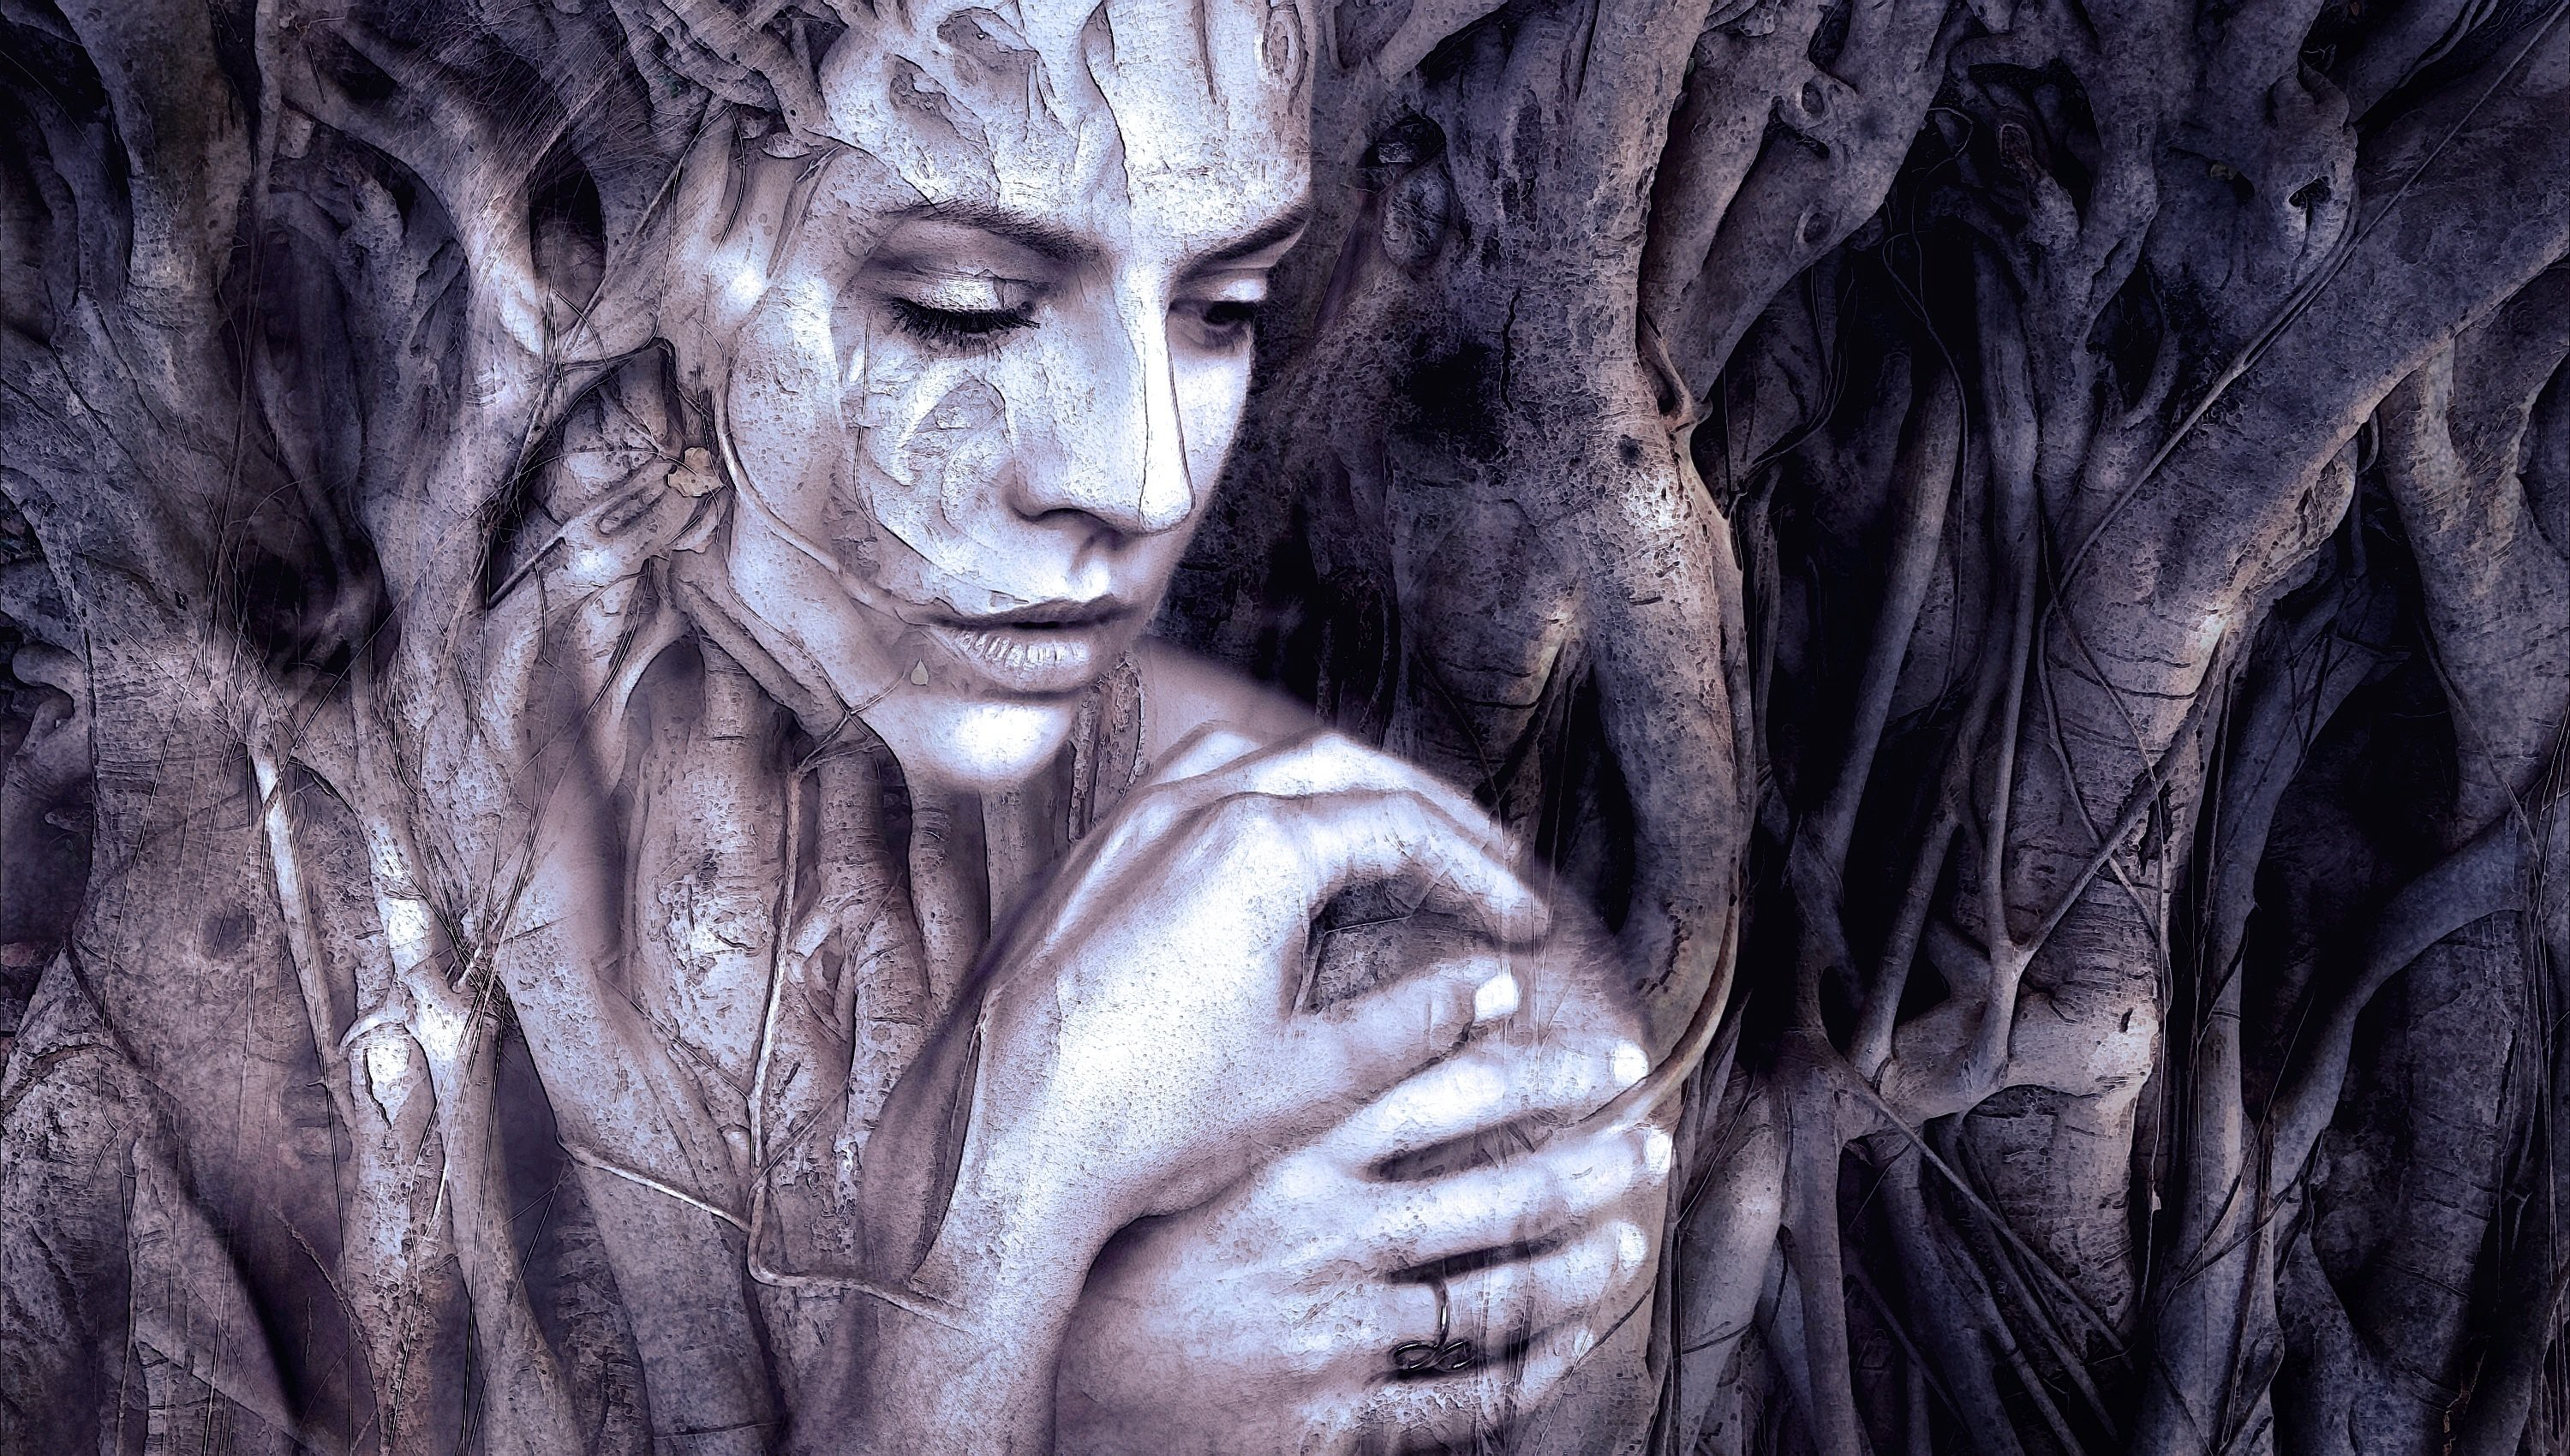 Woman merges with tree roots in art.